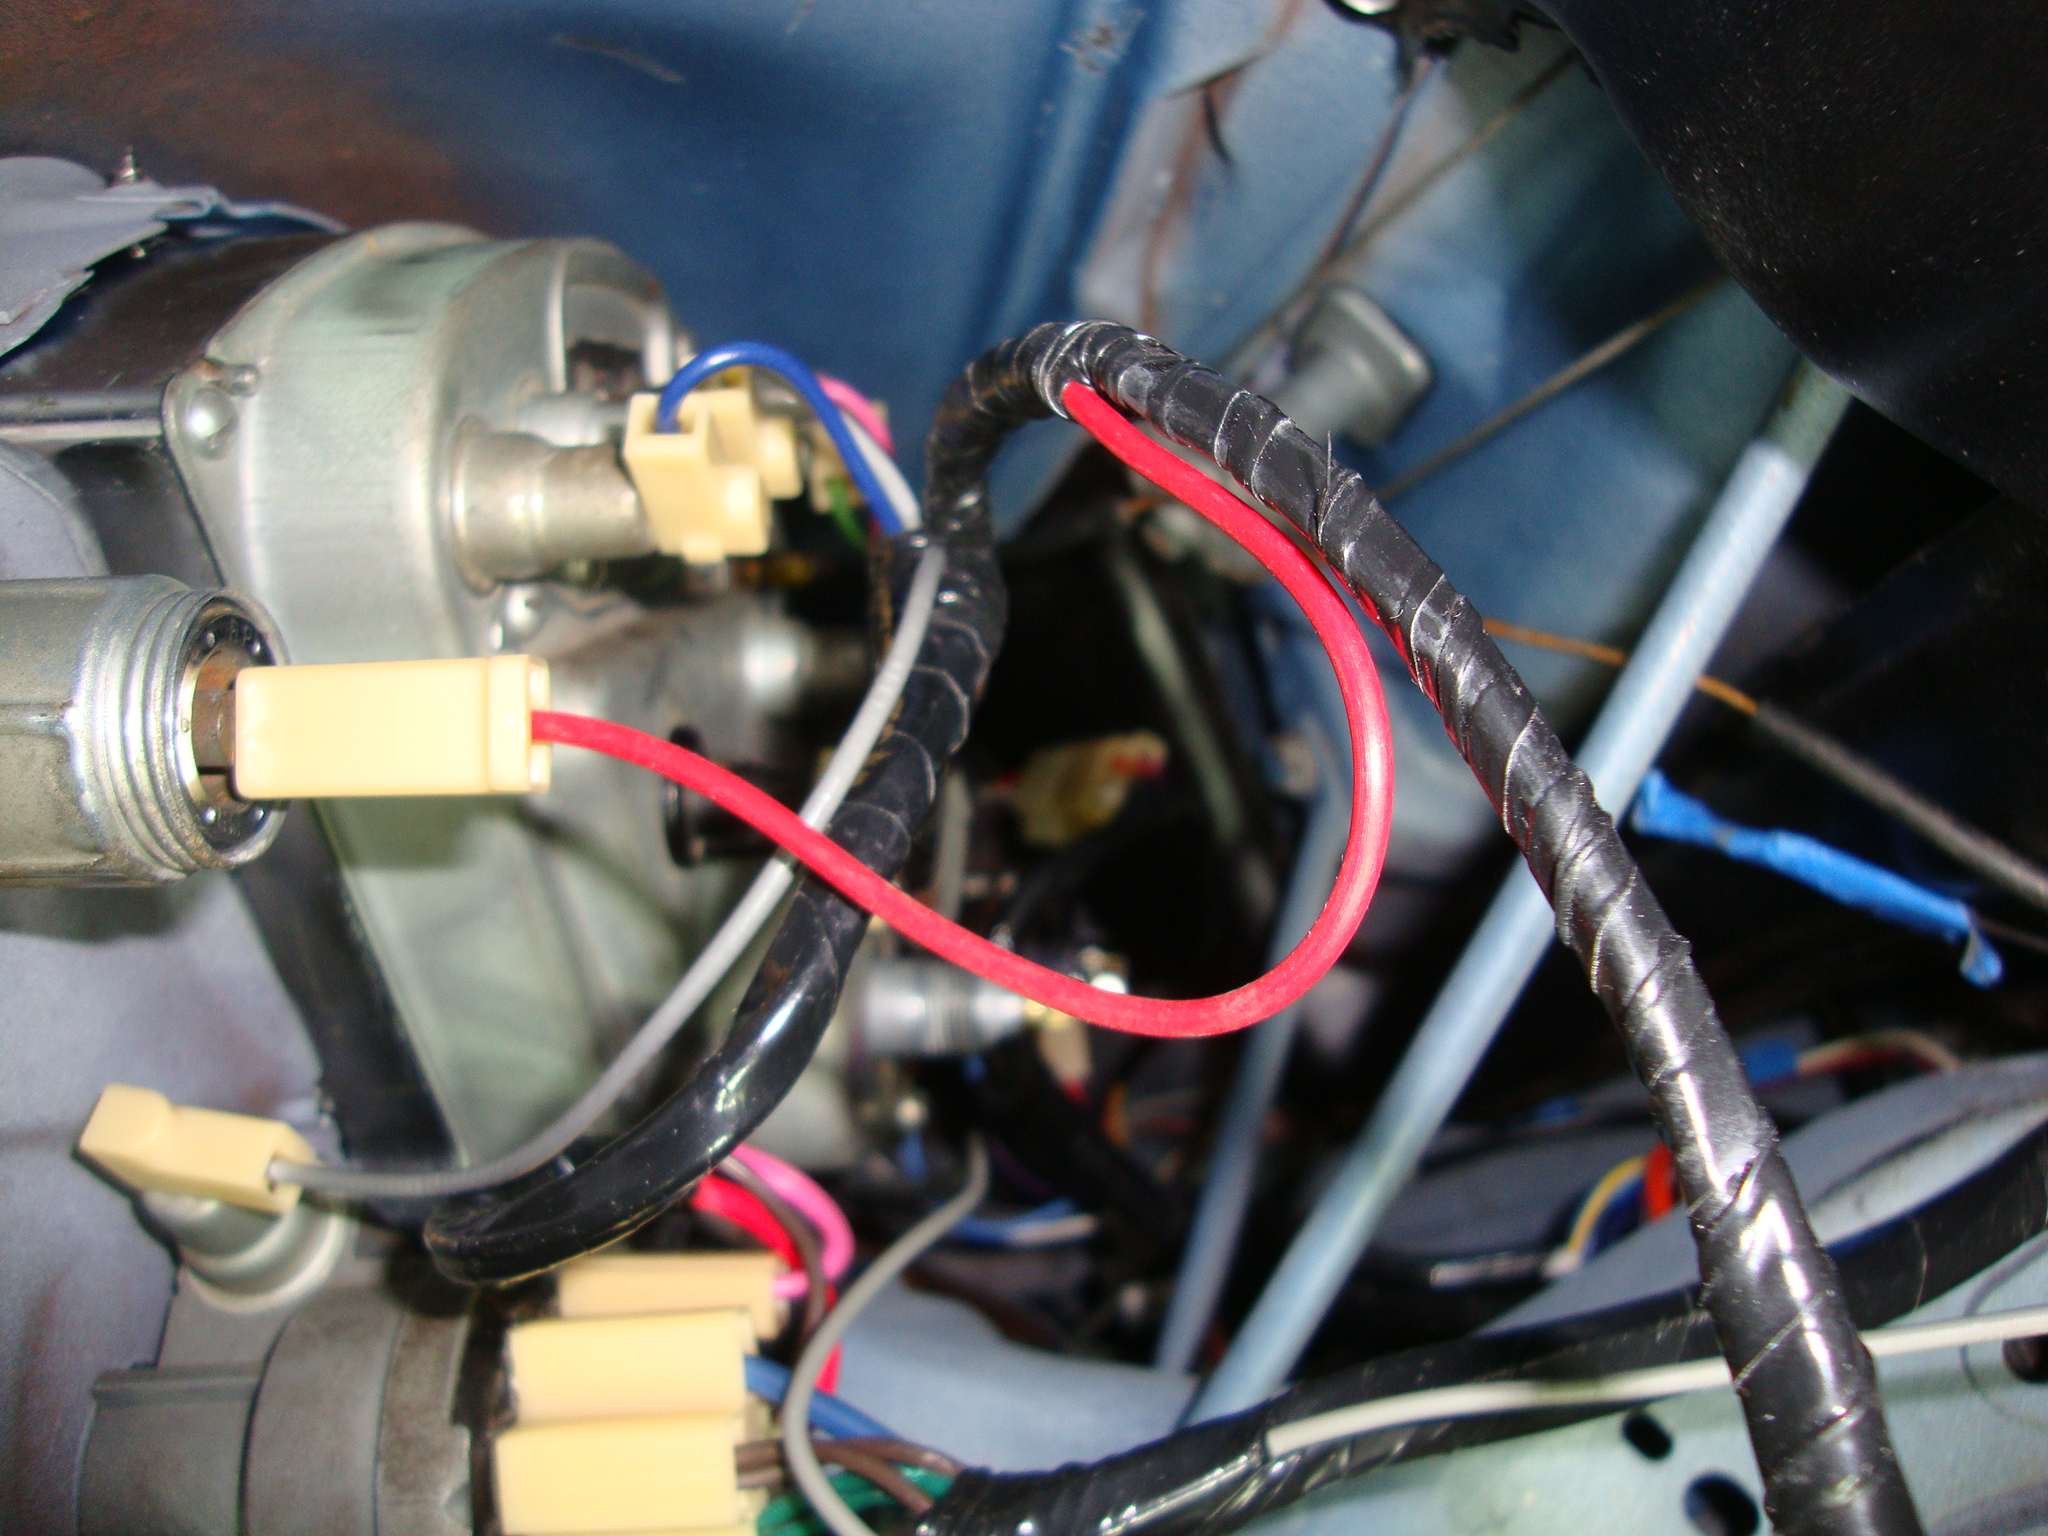 55 Chevy Instrument Cluster Wiring Diagram from www.trifive.com